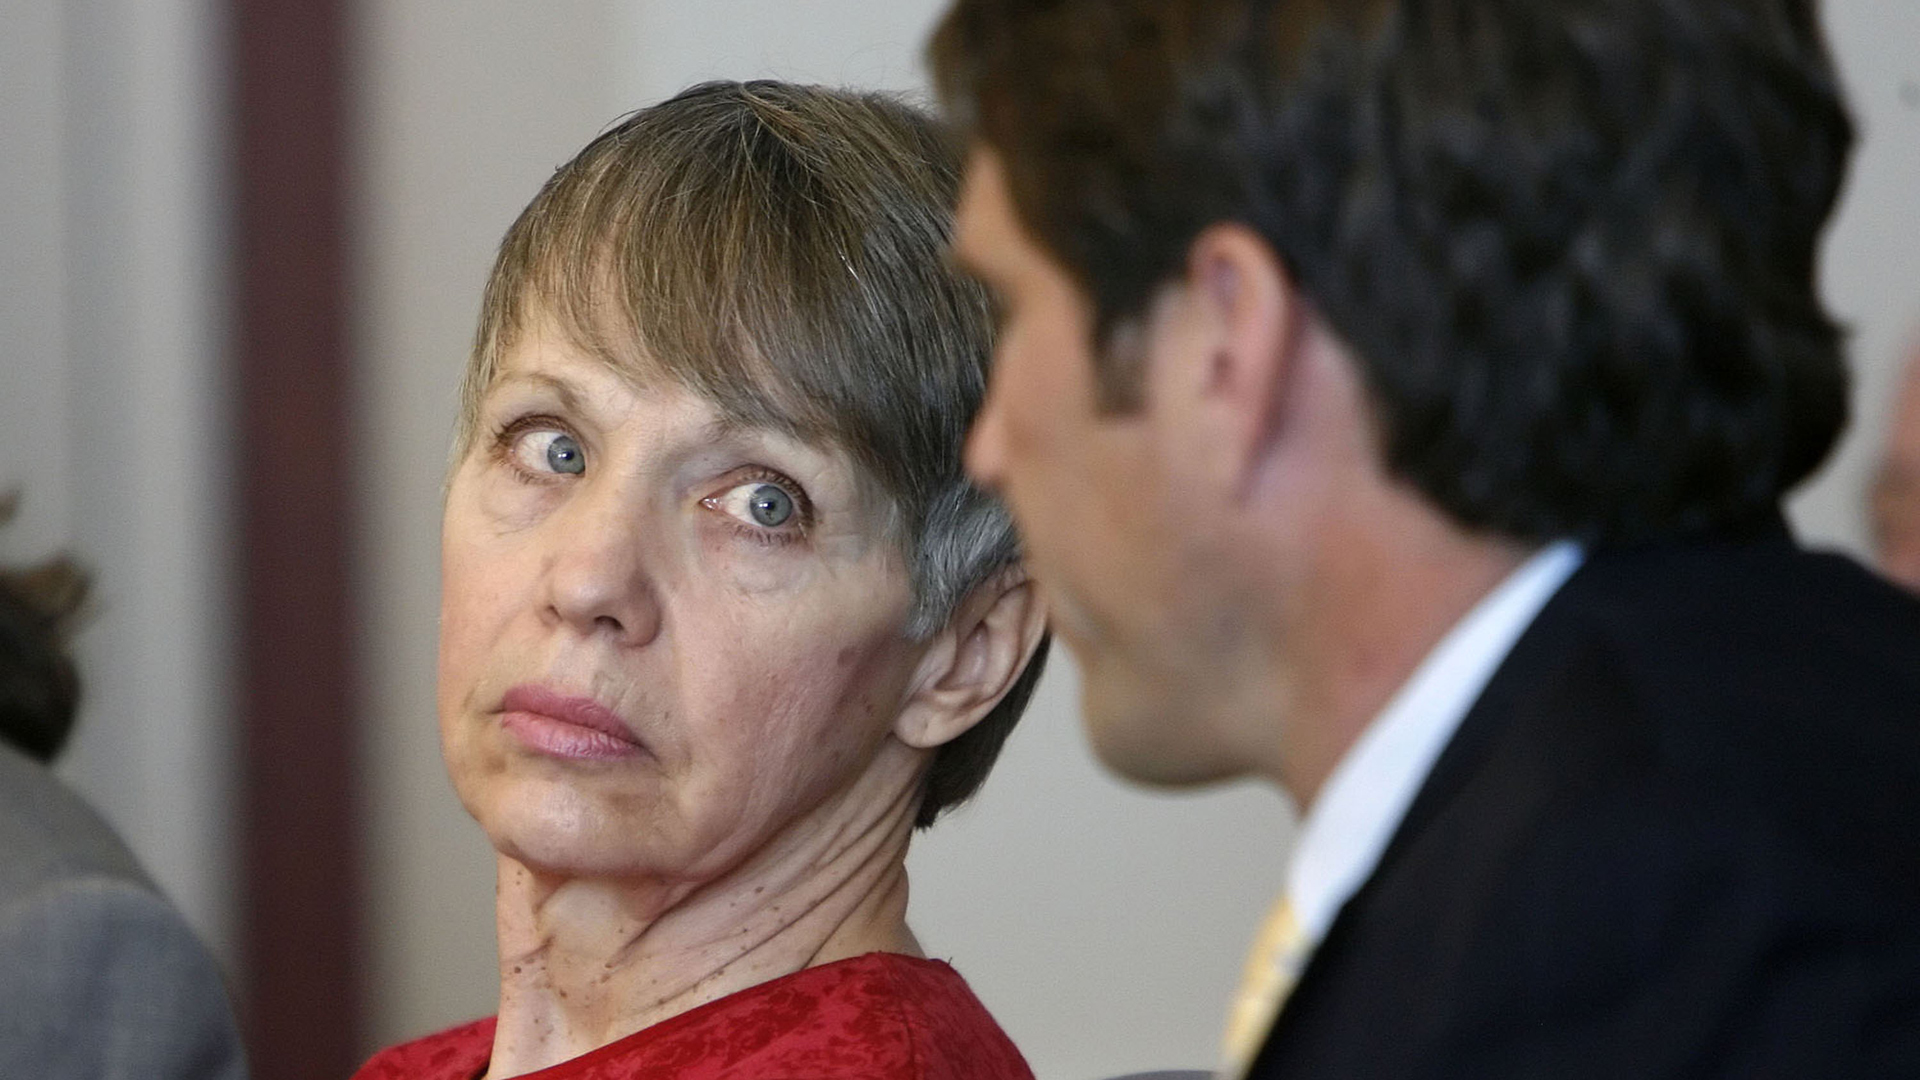 Wanda Barzee, pictured in court during a forced medication hearing in Salt Lake City, Utah, on February 16, 2006. (Credit: Steve Griffin-Pool/Getty Images)